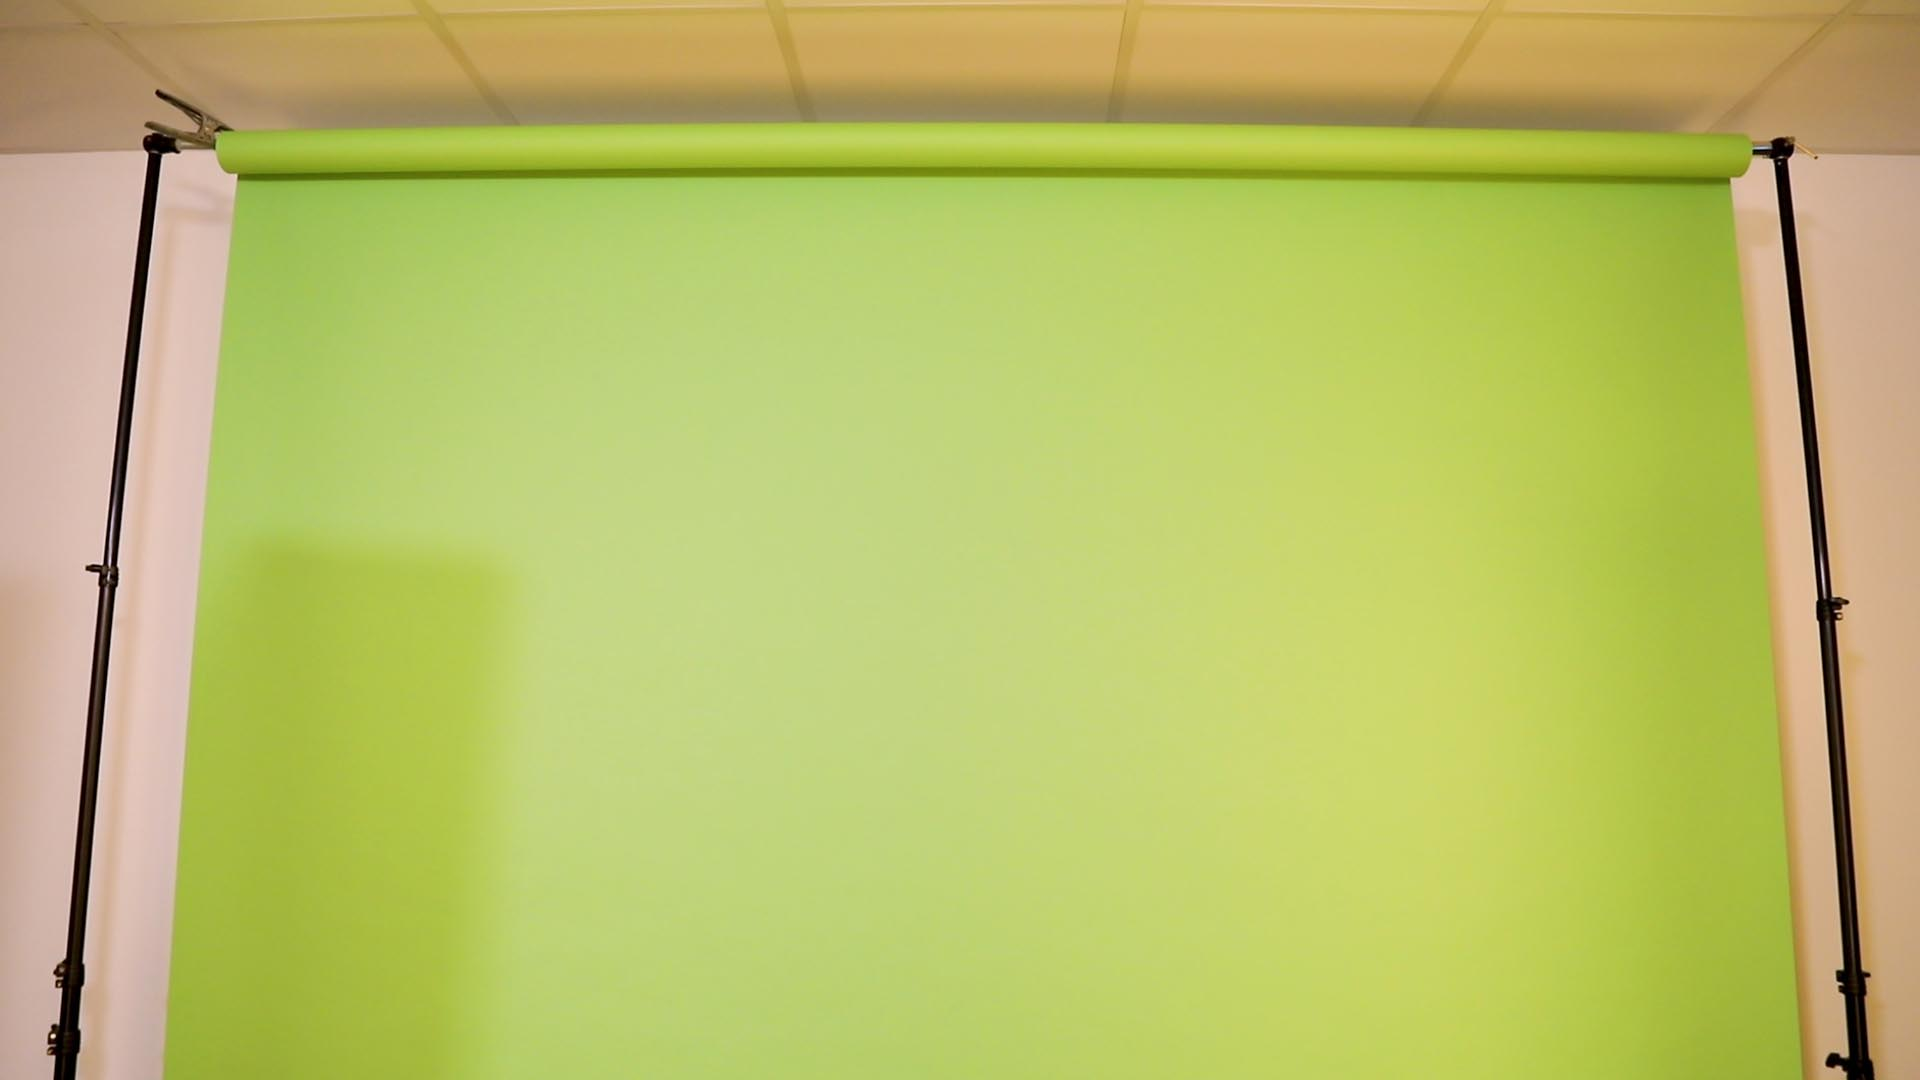 Example of a Green Screen.